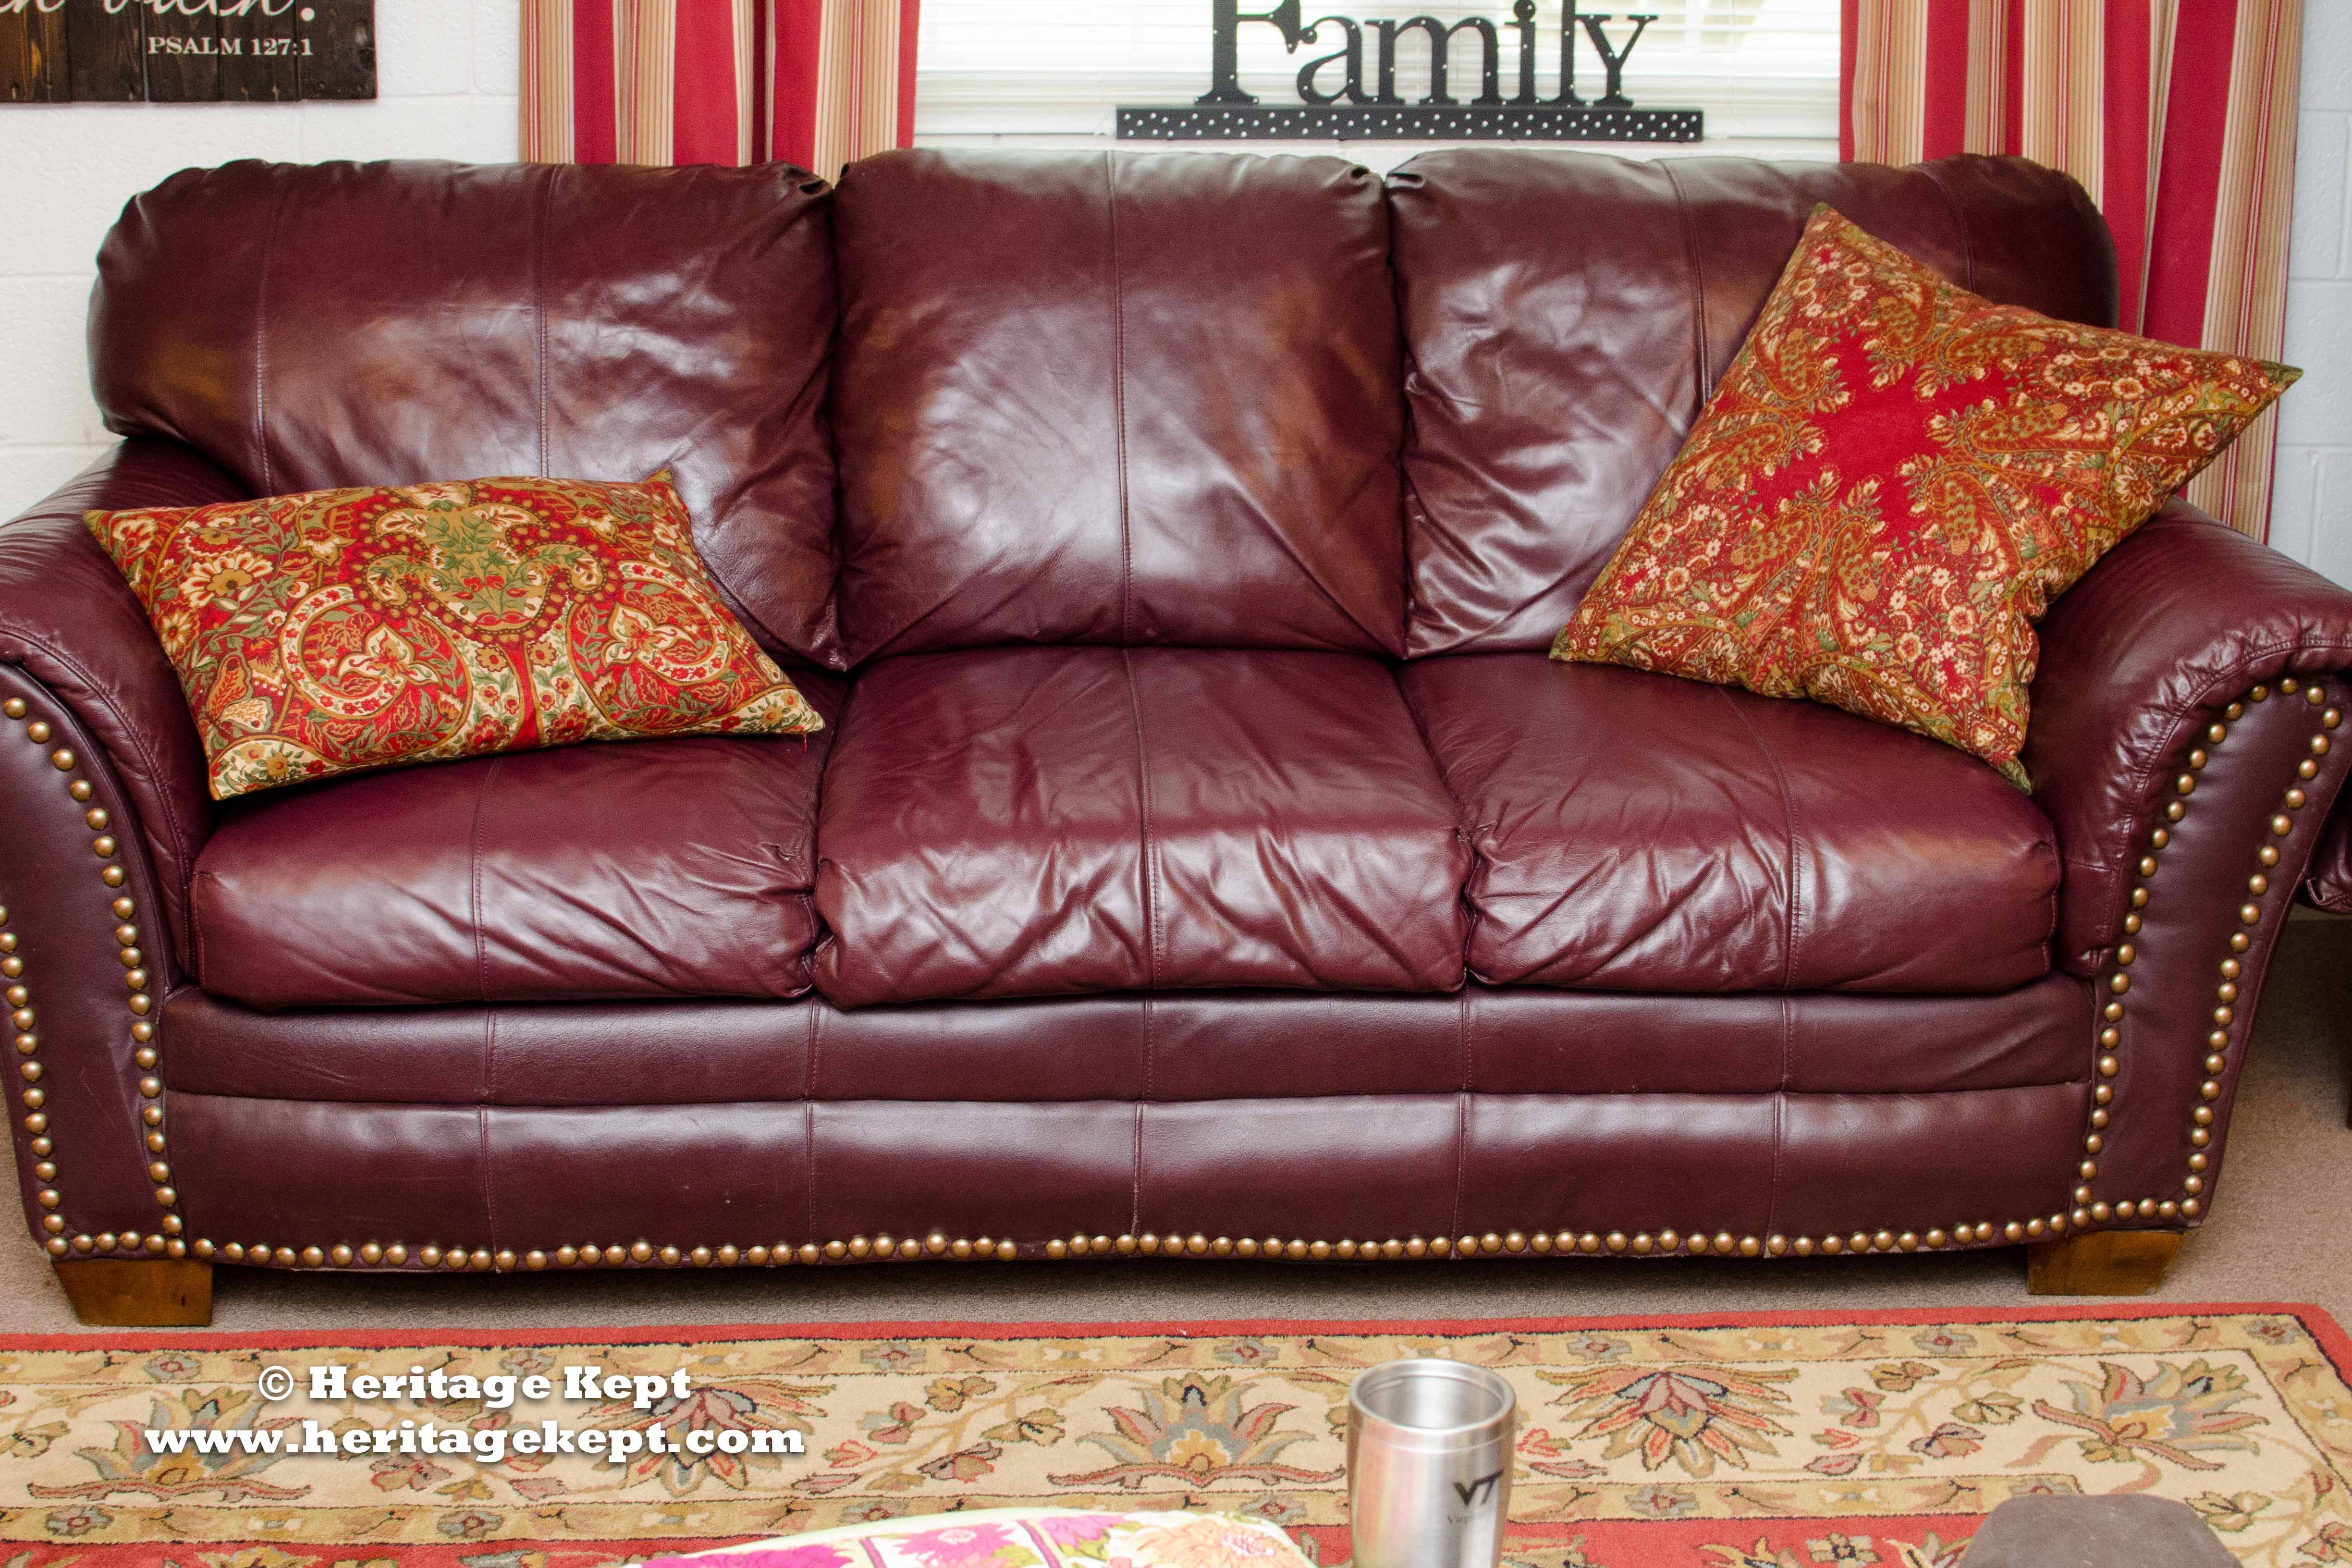 Leather Couch Craigslist Sofa Couch Office Sofa